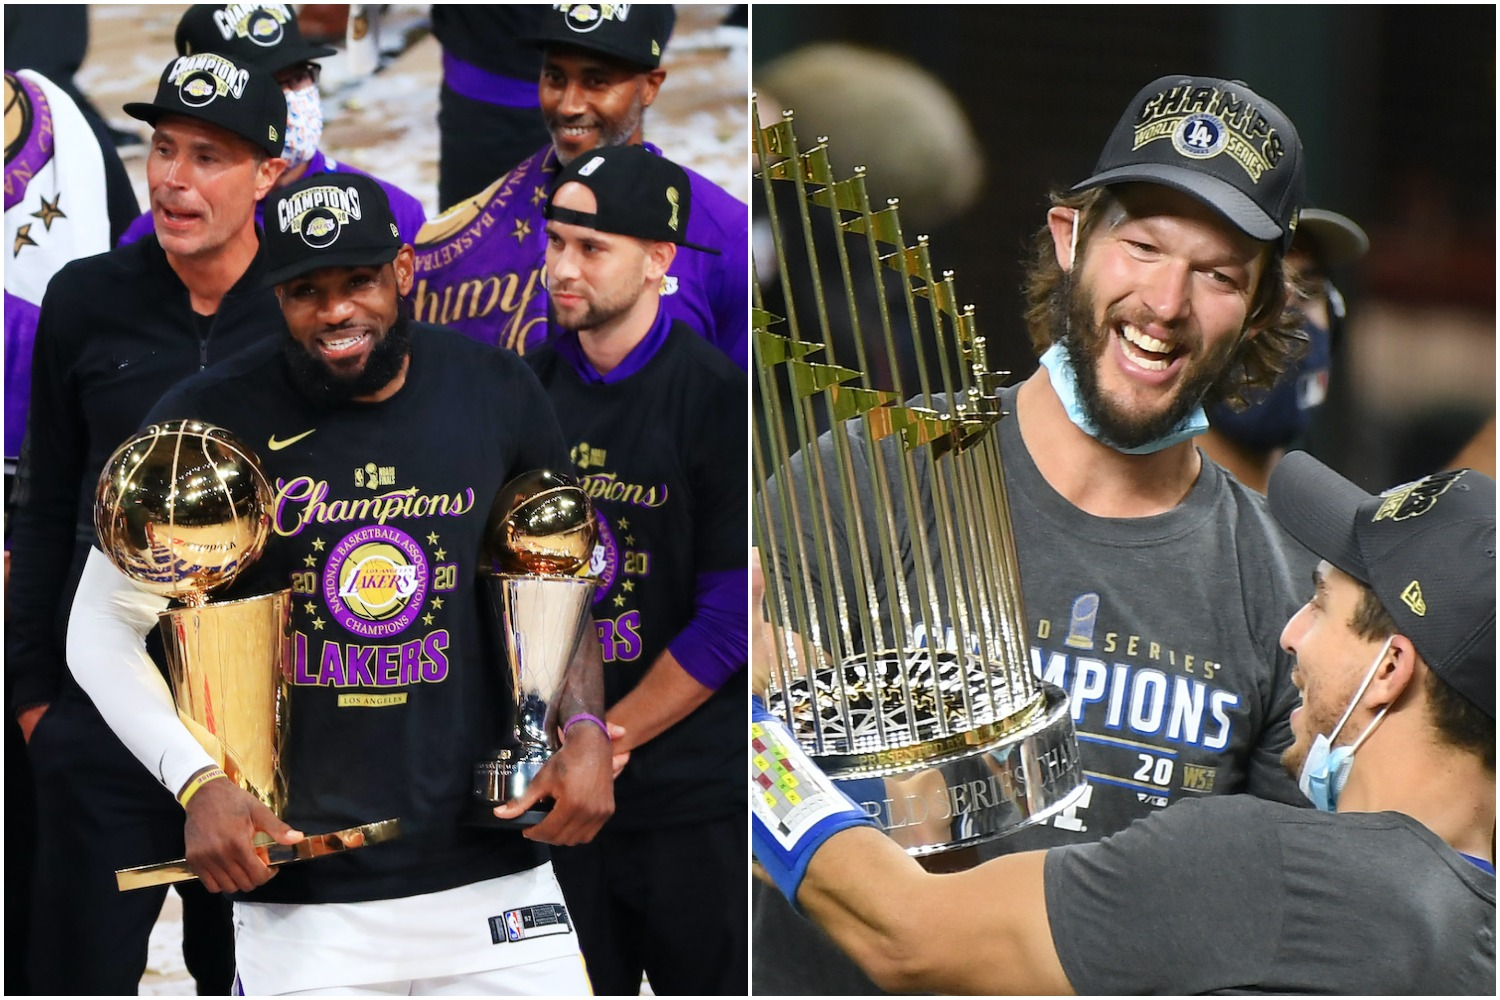 LeBron James and the Lakers and Clayton Kershaw and the Dodgers brought championship trophies to LA in 2020 -- and it wasn't the first time those teams won titles in the same year.